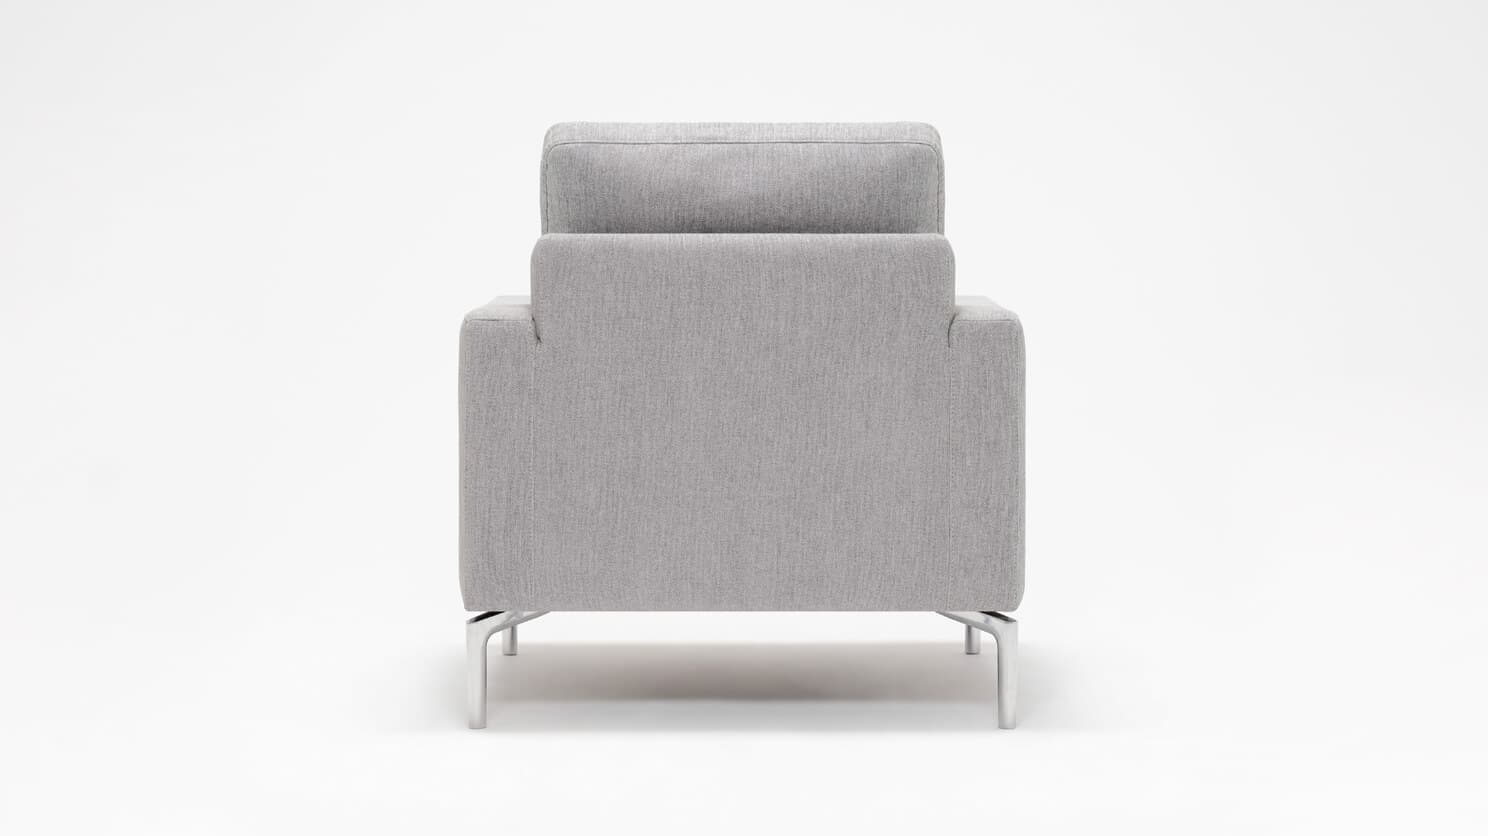 31127 02 7 chairs eve chair coda concrete back 01